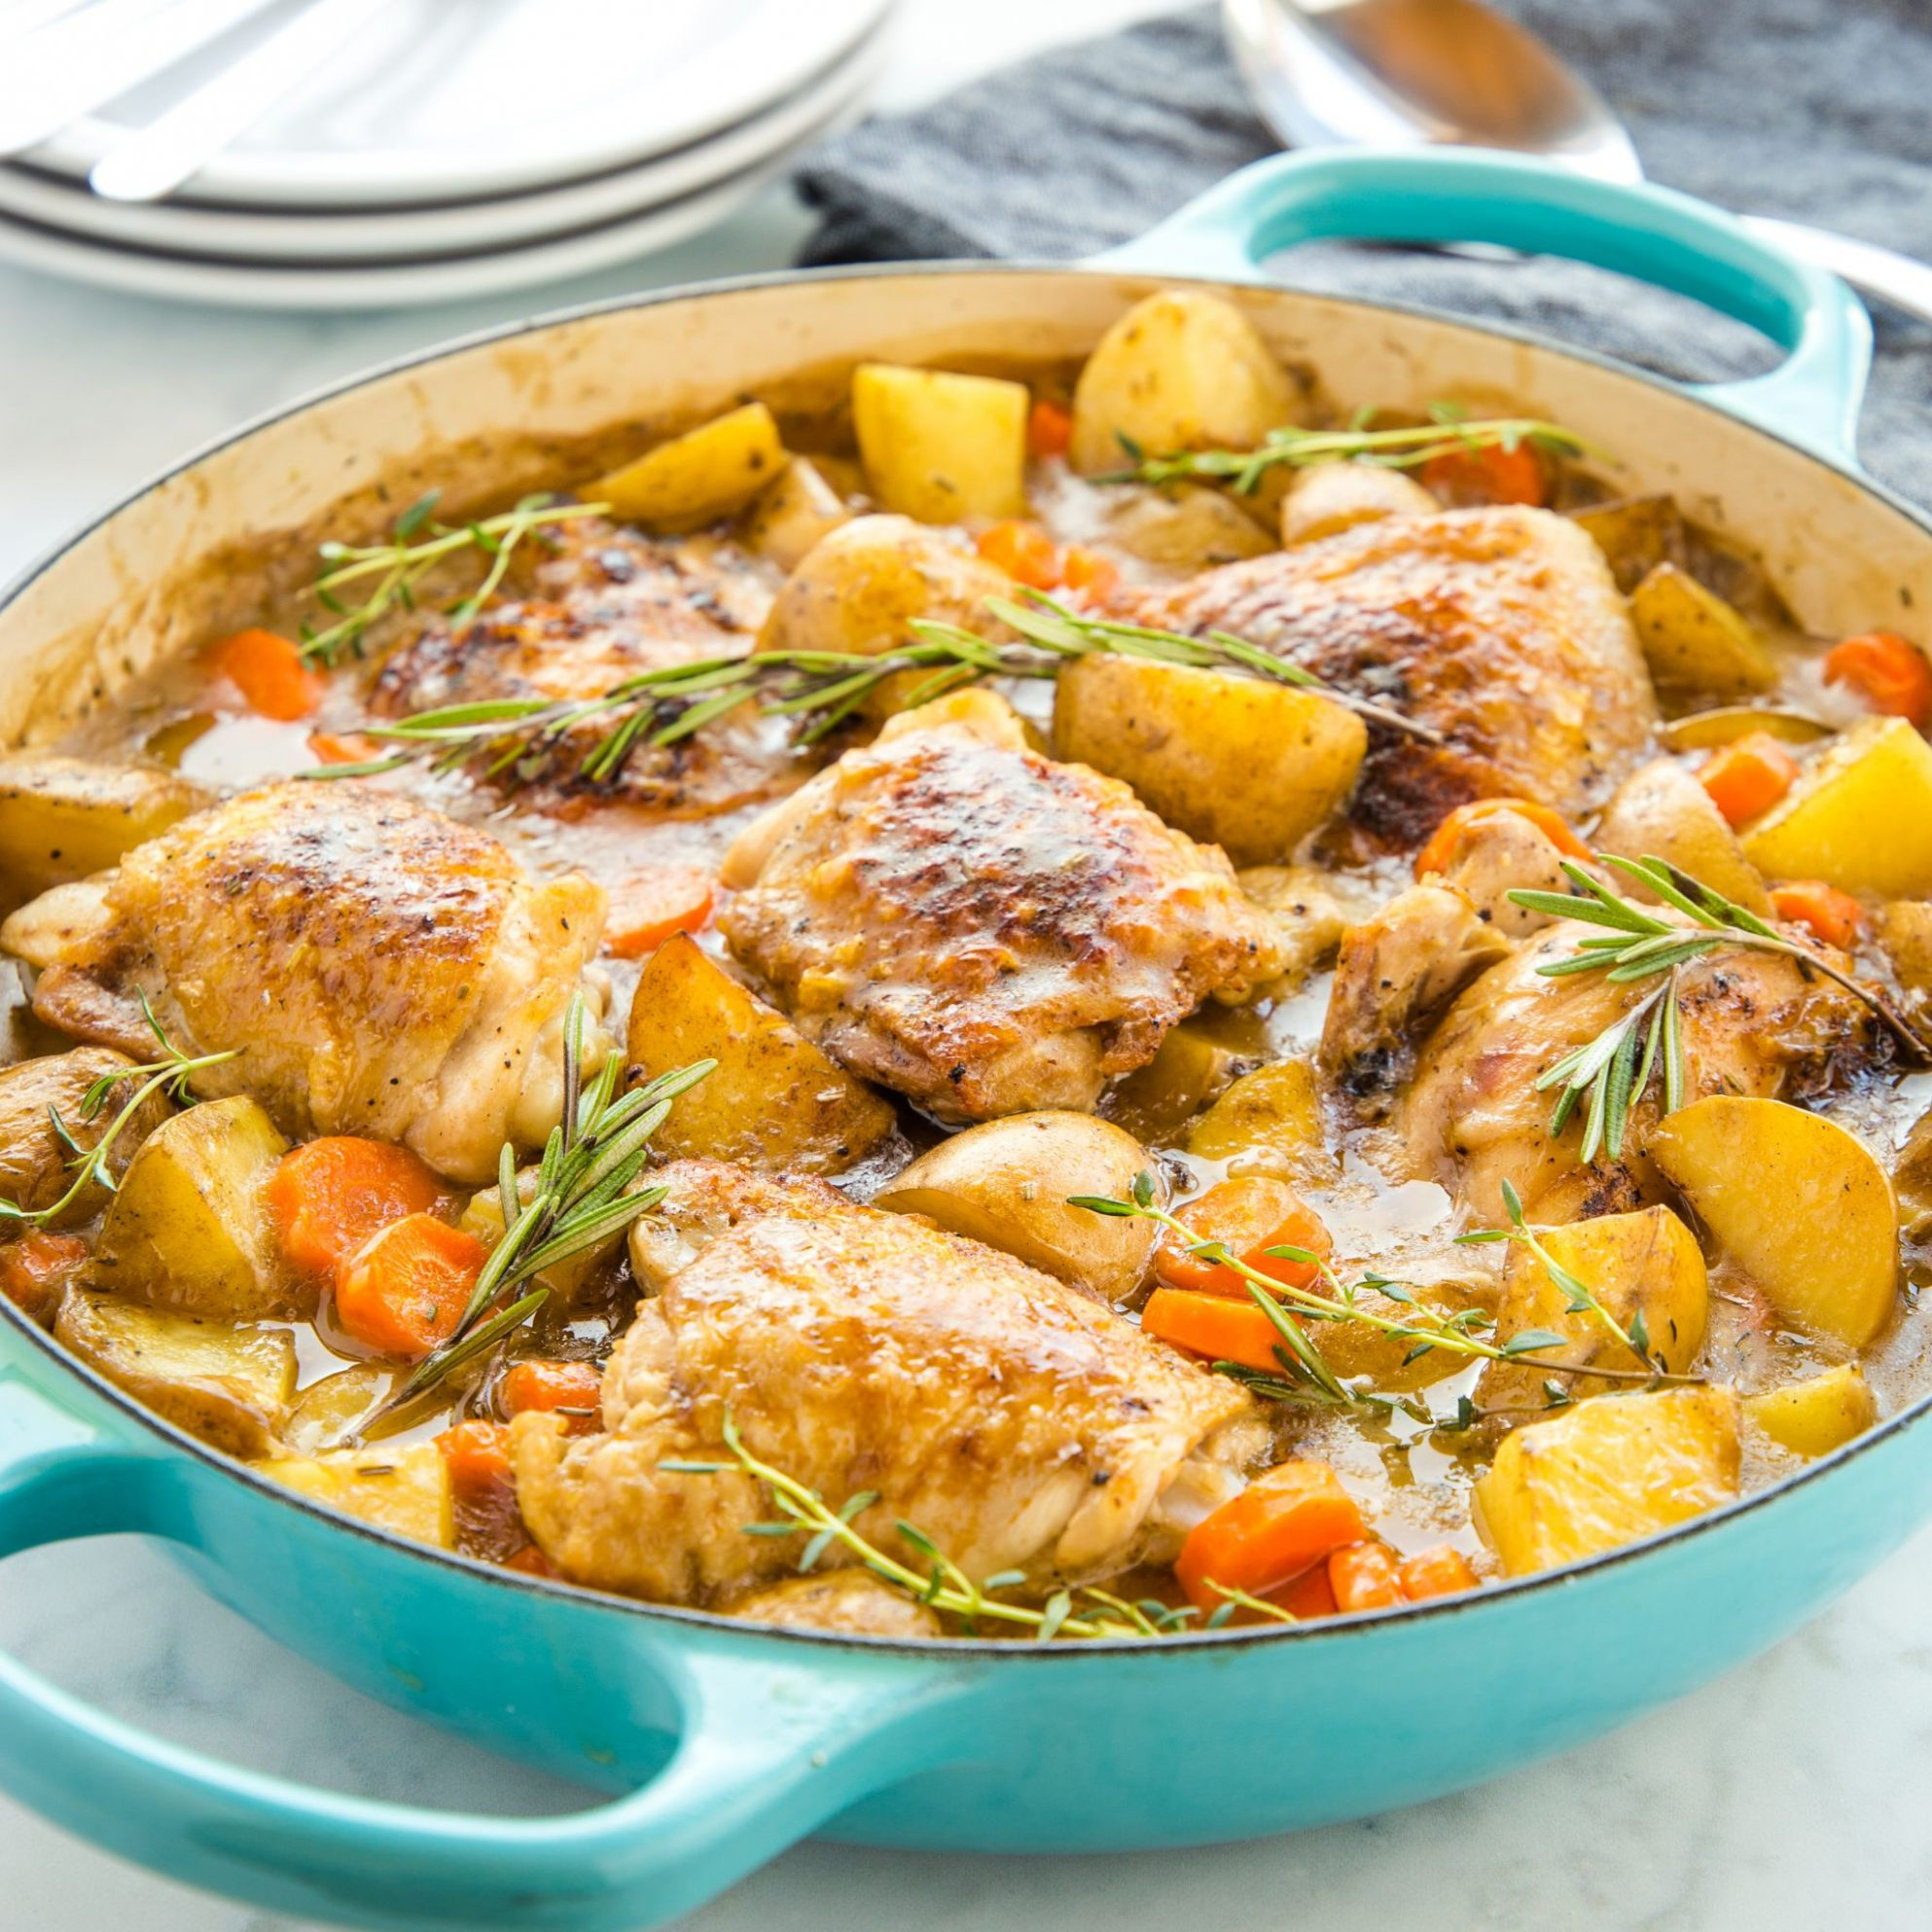 Easy One Pot Roasted Chicken Dinner - Recipes Chicken One Pot